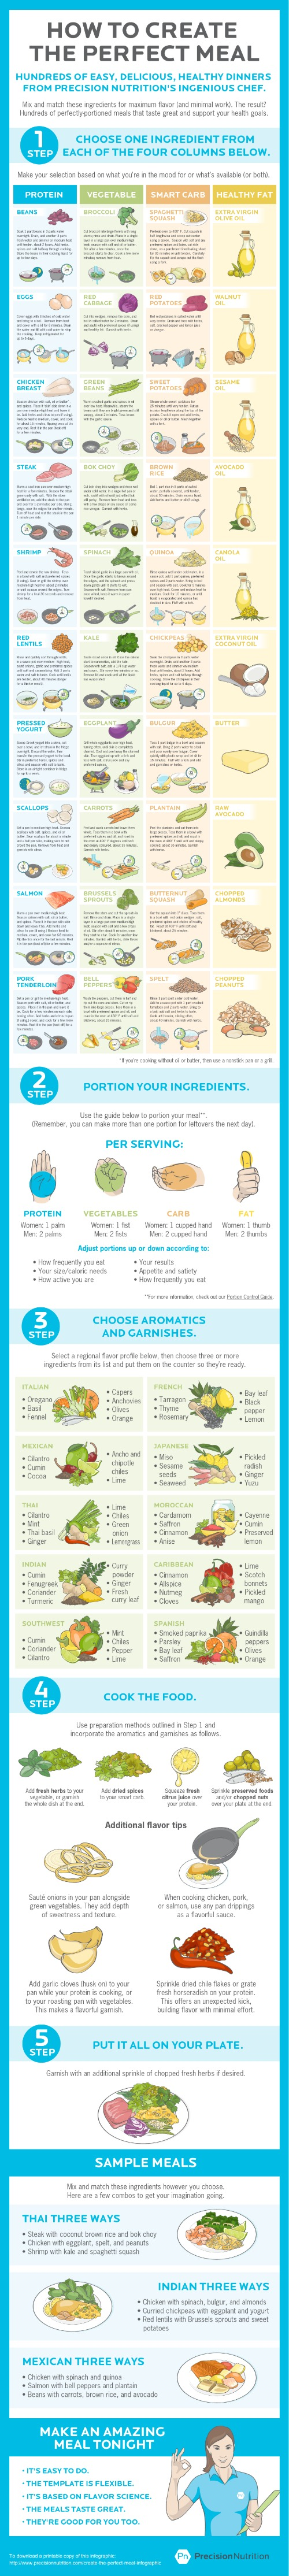 10 Super Handy Cooking Tips Everyone Needs to Know- To make the tastiest food (and spend the least amount of time in the kitchen), you'll want to make sure you know these handy cooking tips! | kitchen tips, tips and tricks, kitchen infographic, cooking infographic, baking infographic